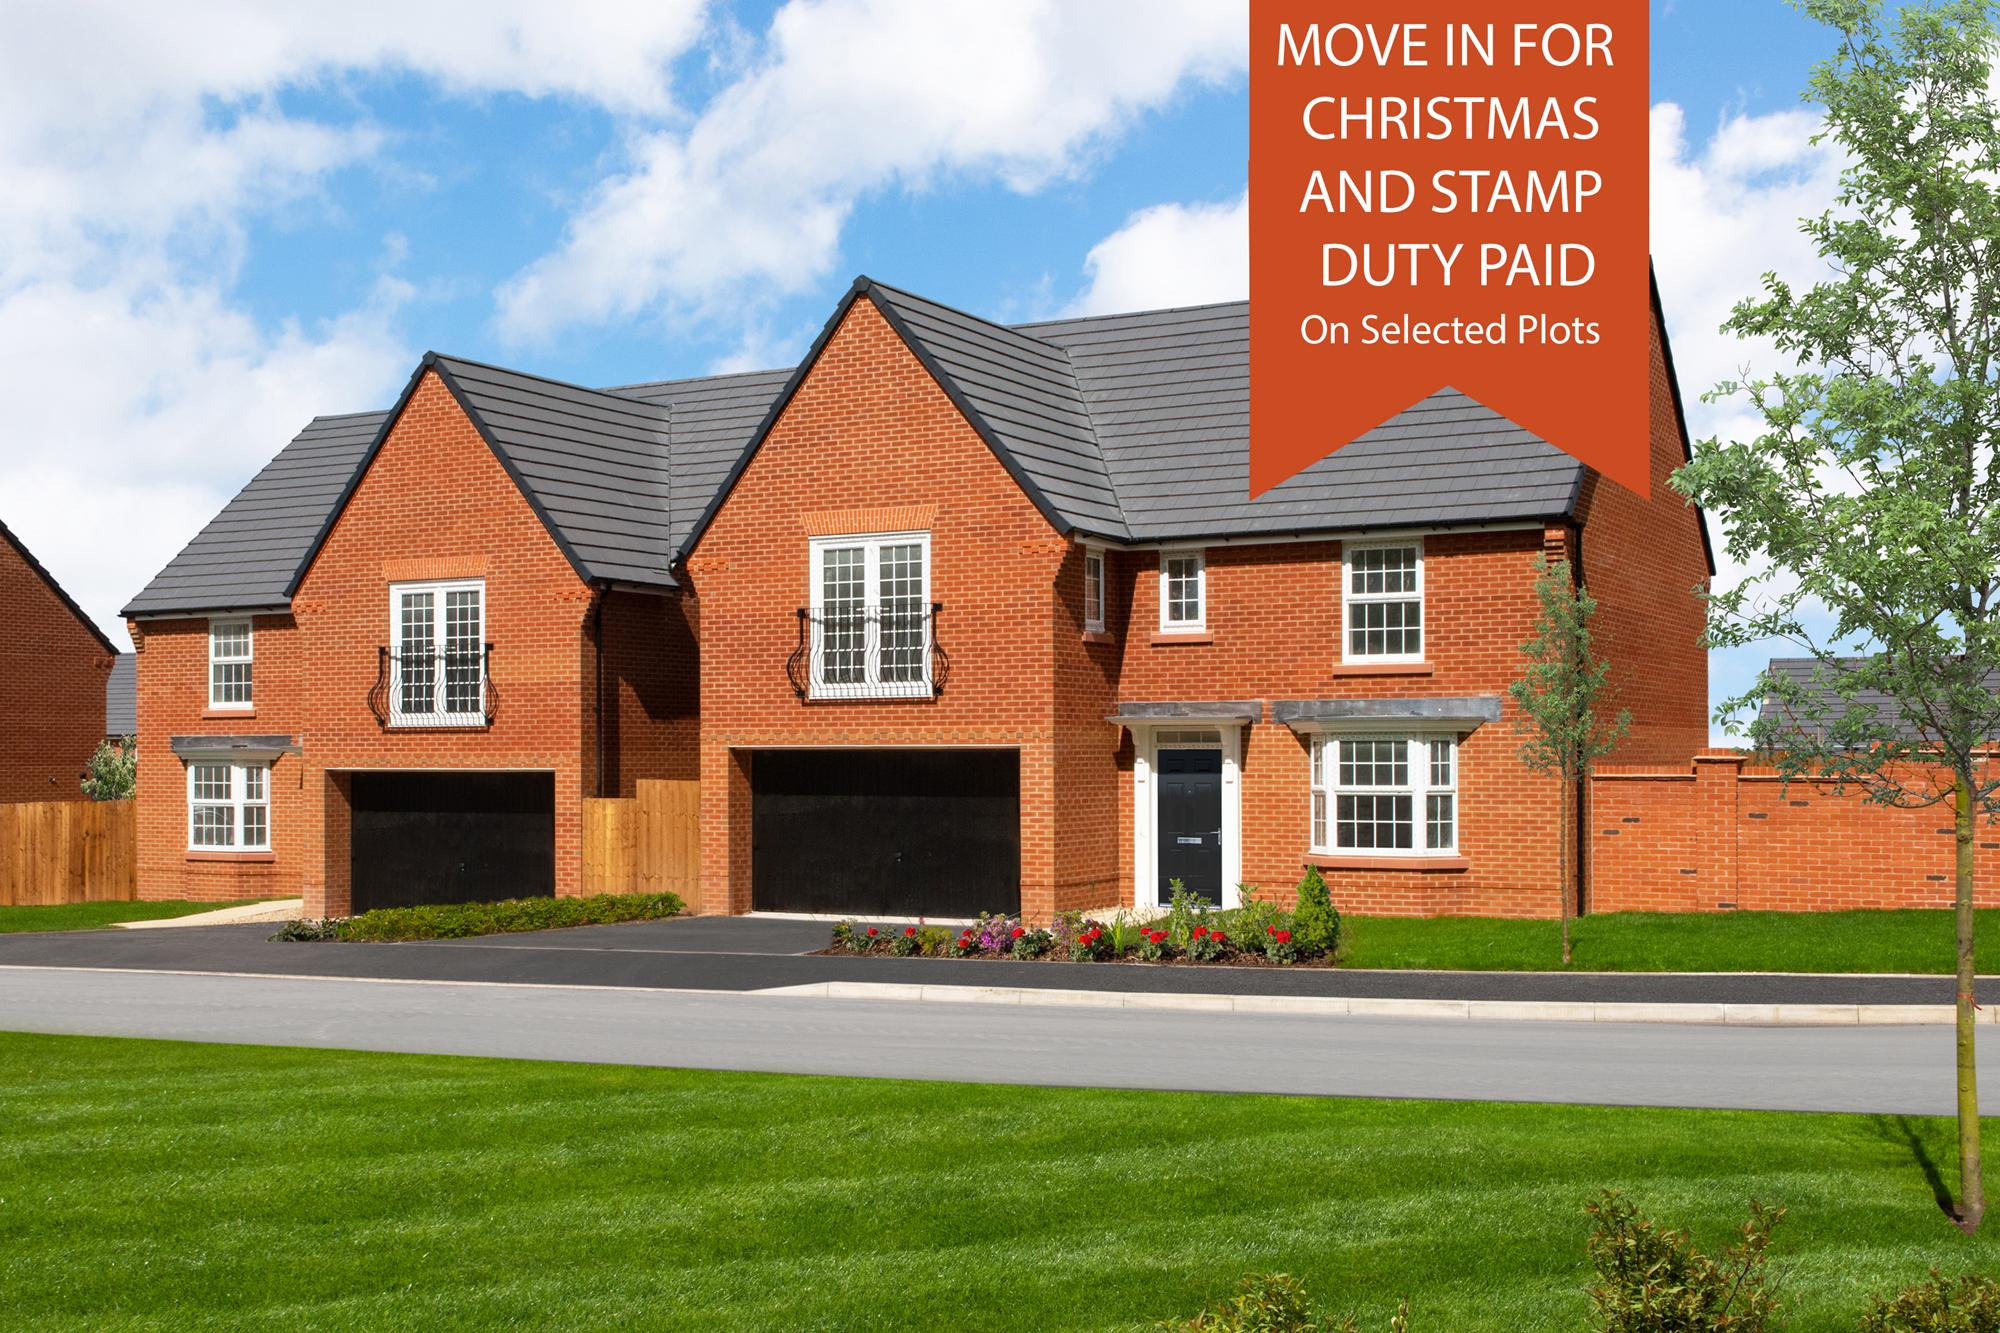 New Build Homes in Congleton